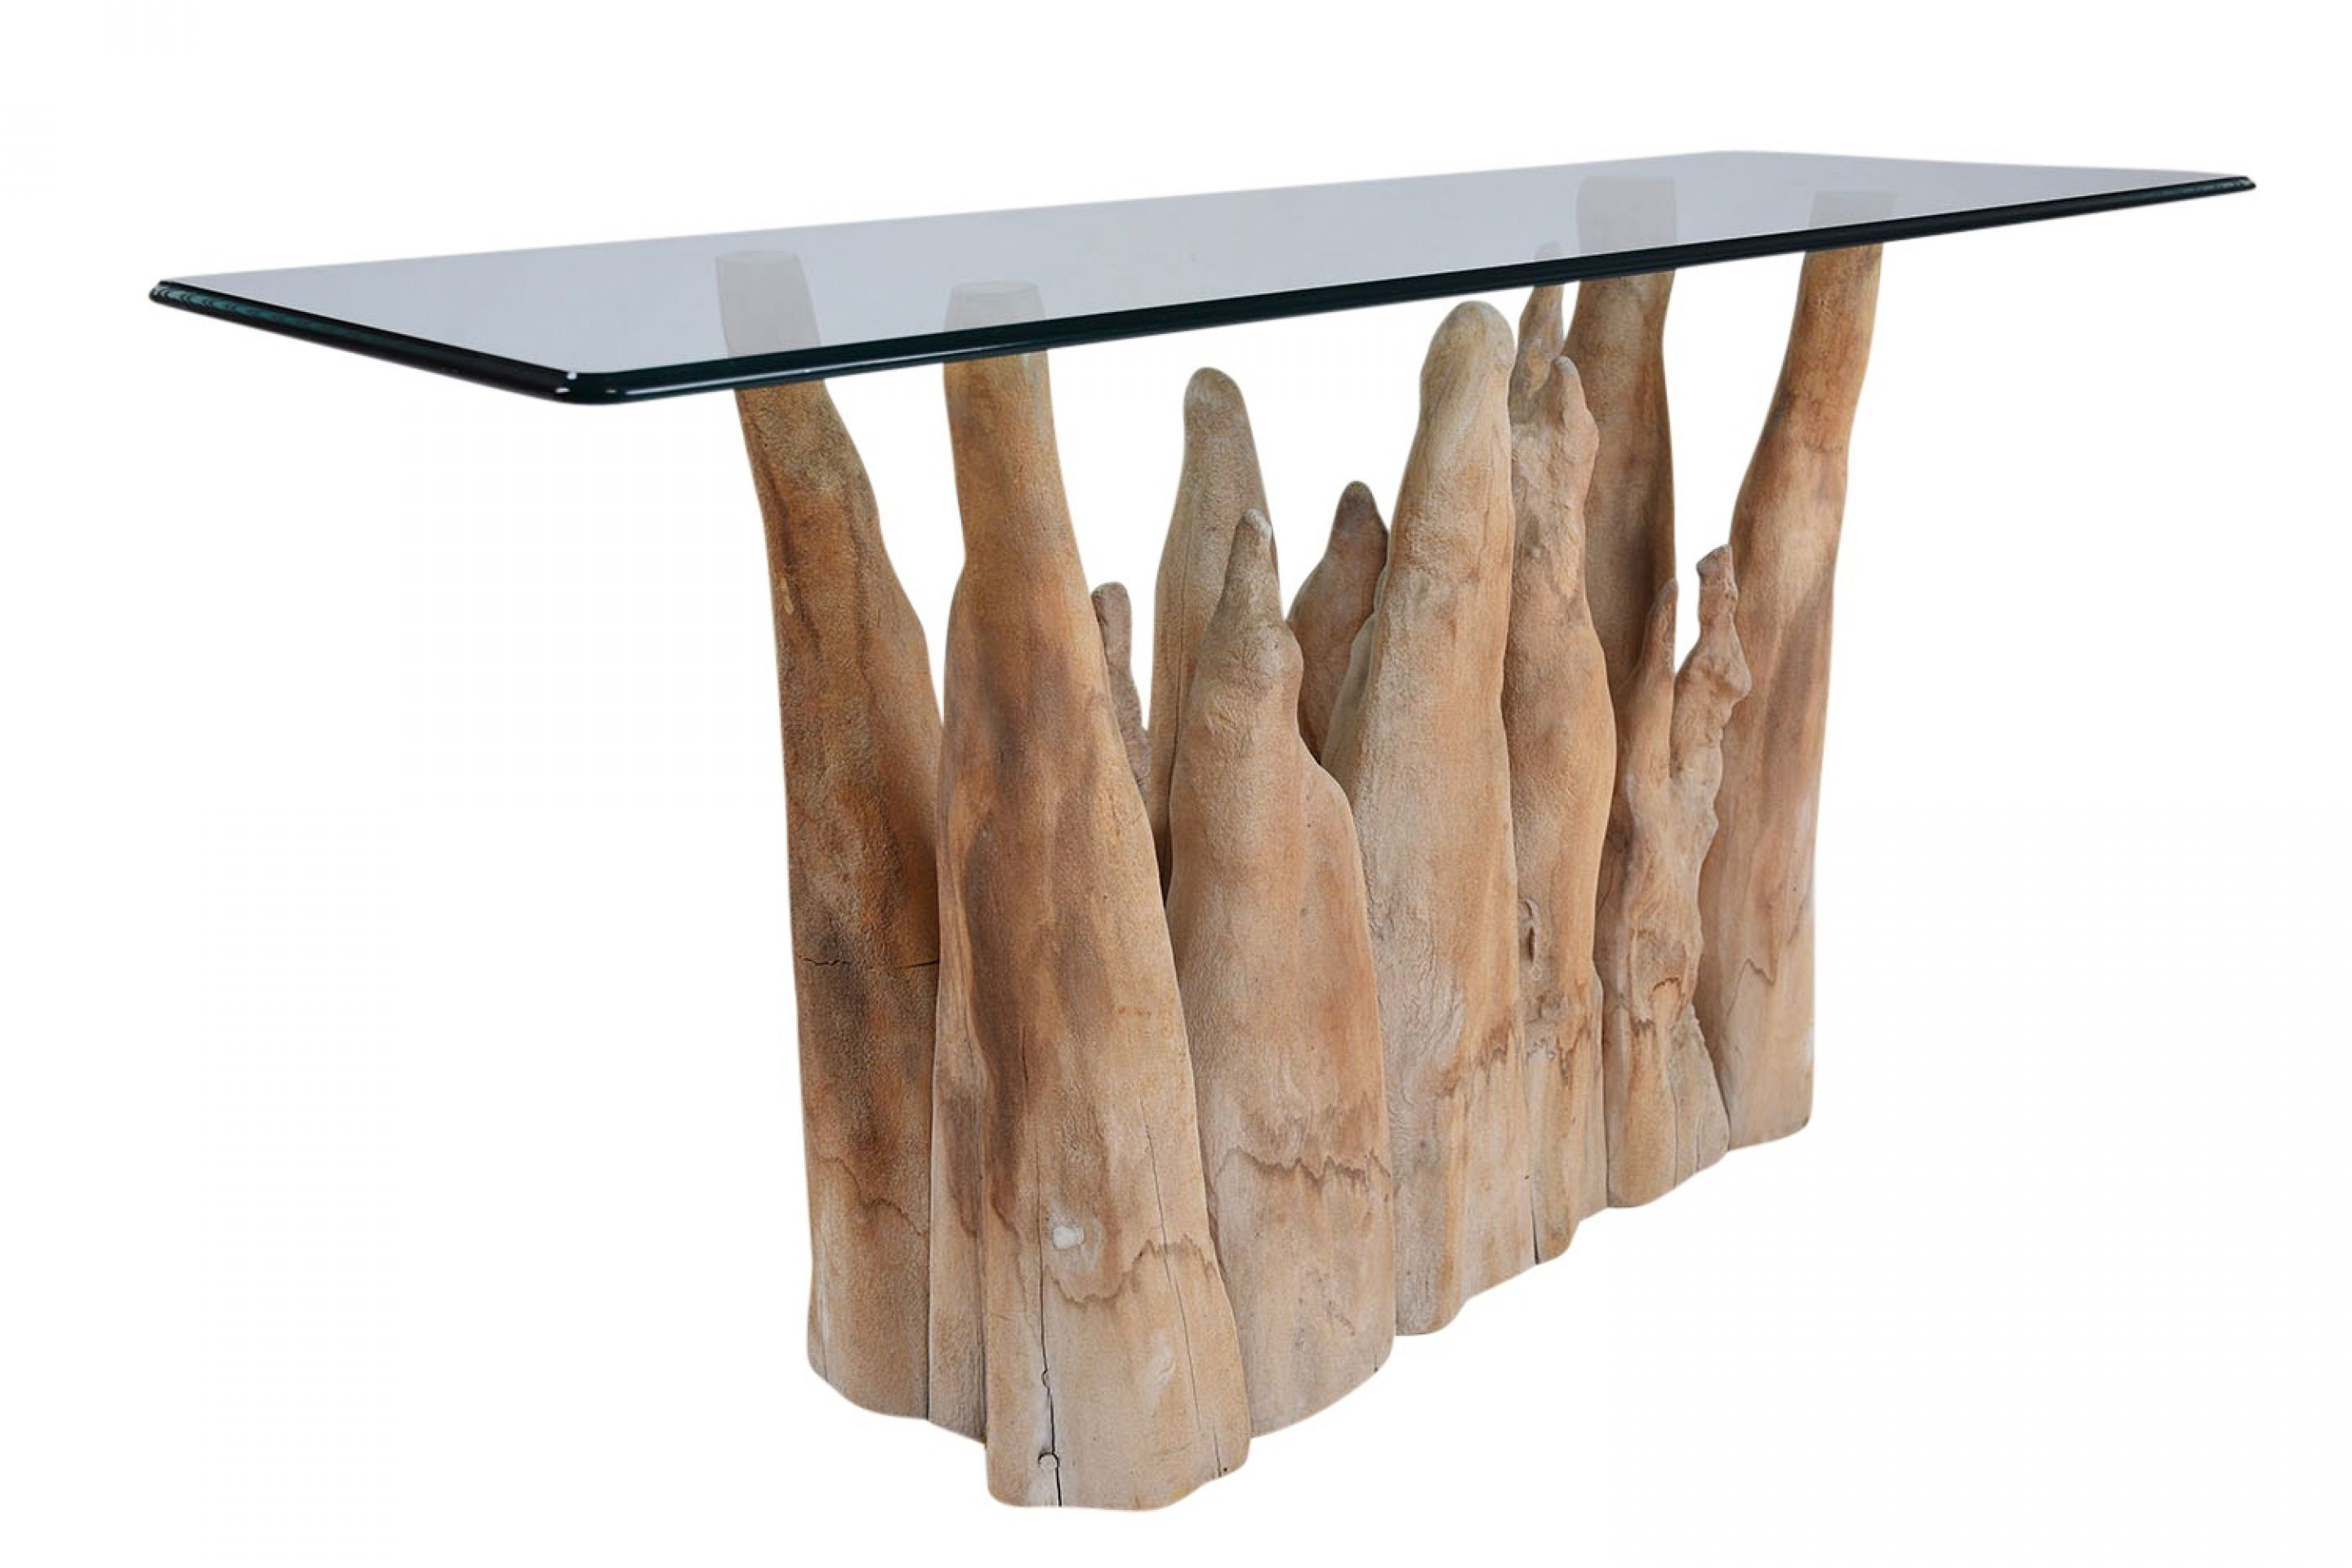 Sculptural Sofa Table by Michael Taylor